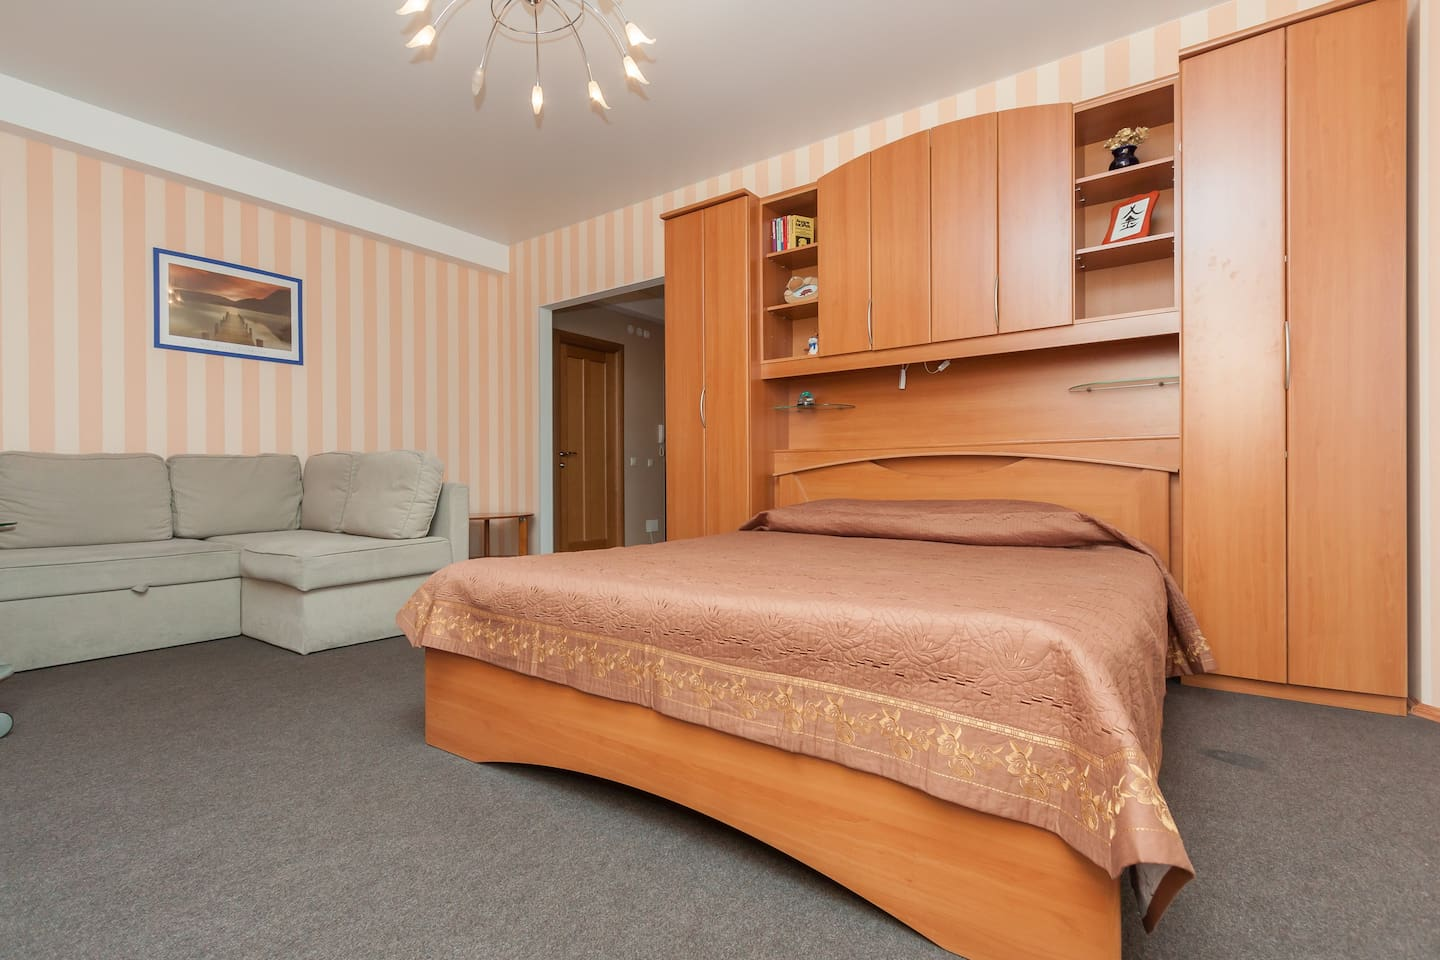 1 room apartment, business class